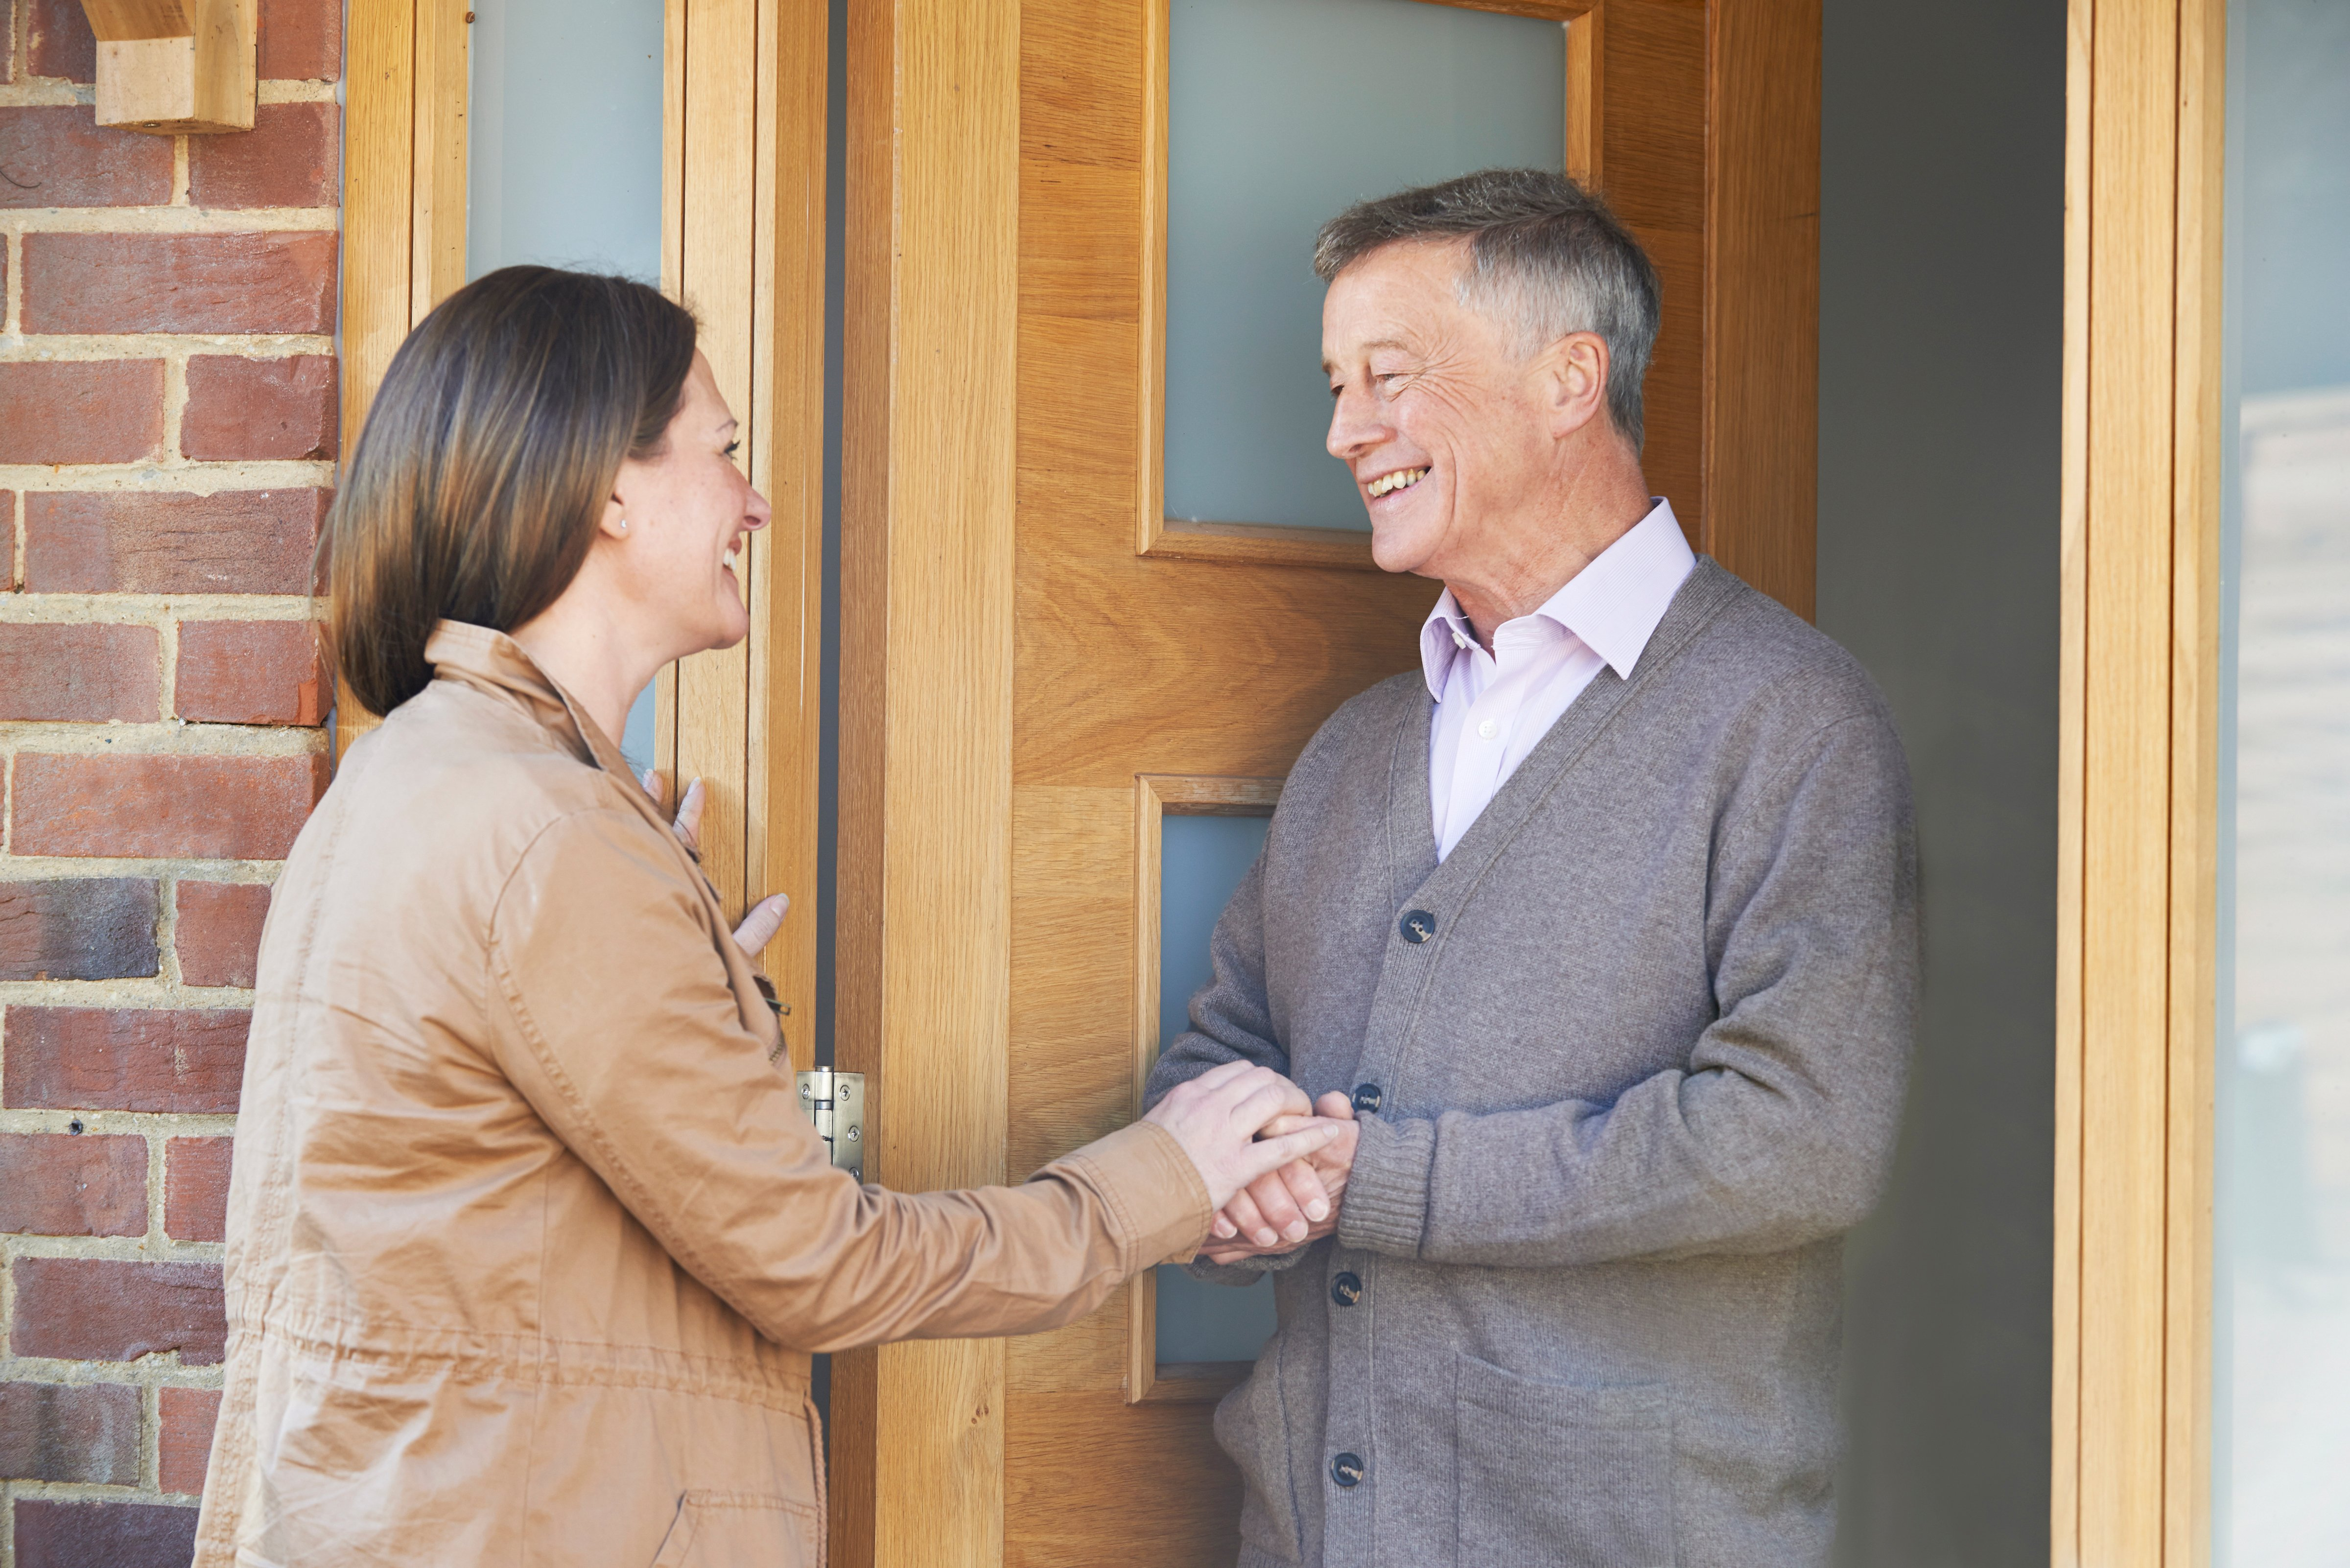 A Woman discussing with her elderly male neighbor. | Photo: Shutterstock